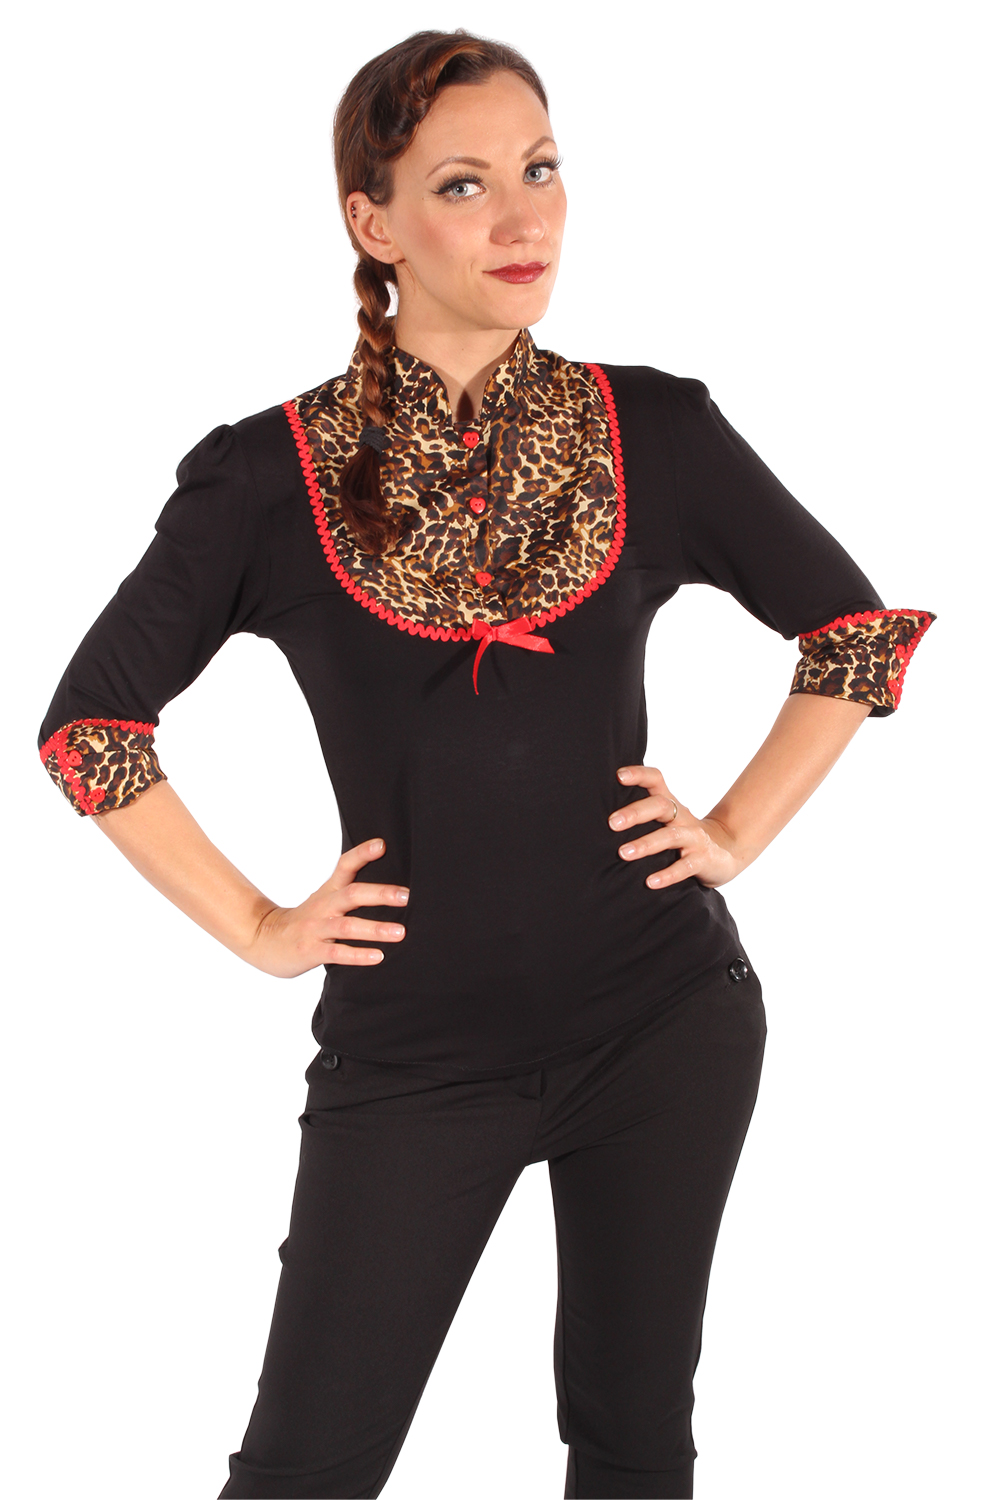 Rockabilly Leoparden 3/4arm Puffärmel LEO retro Shirt Longsleeve